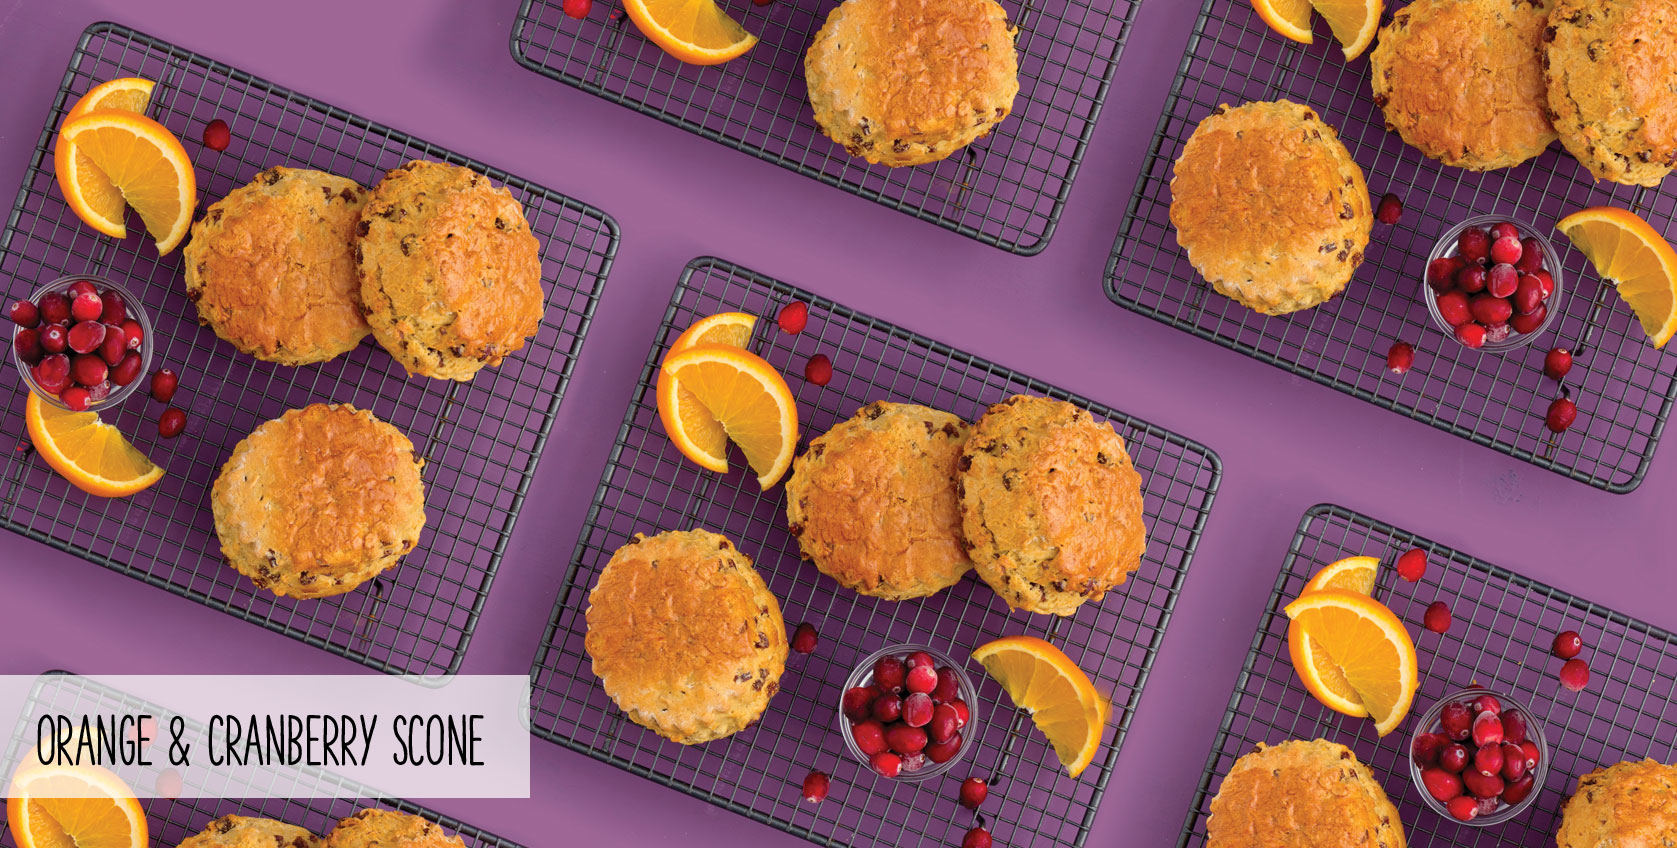 ORANGE & CRANBERRY SCONE - Made with real butter & cranberries. Free from artificial colours & flavours.